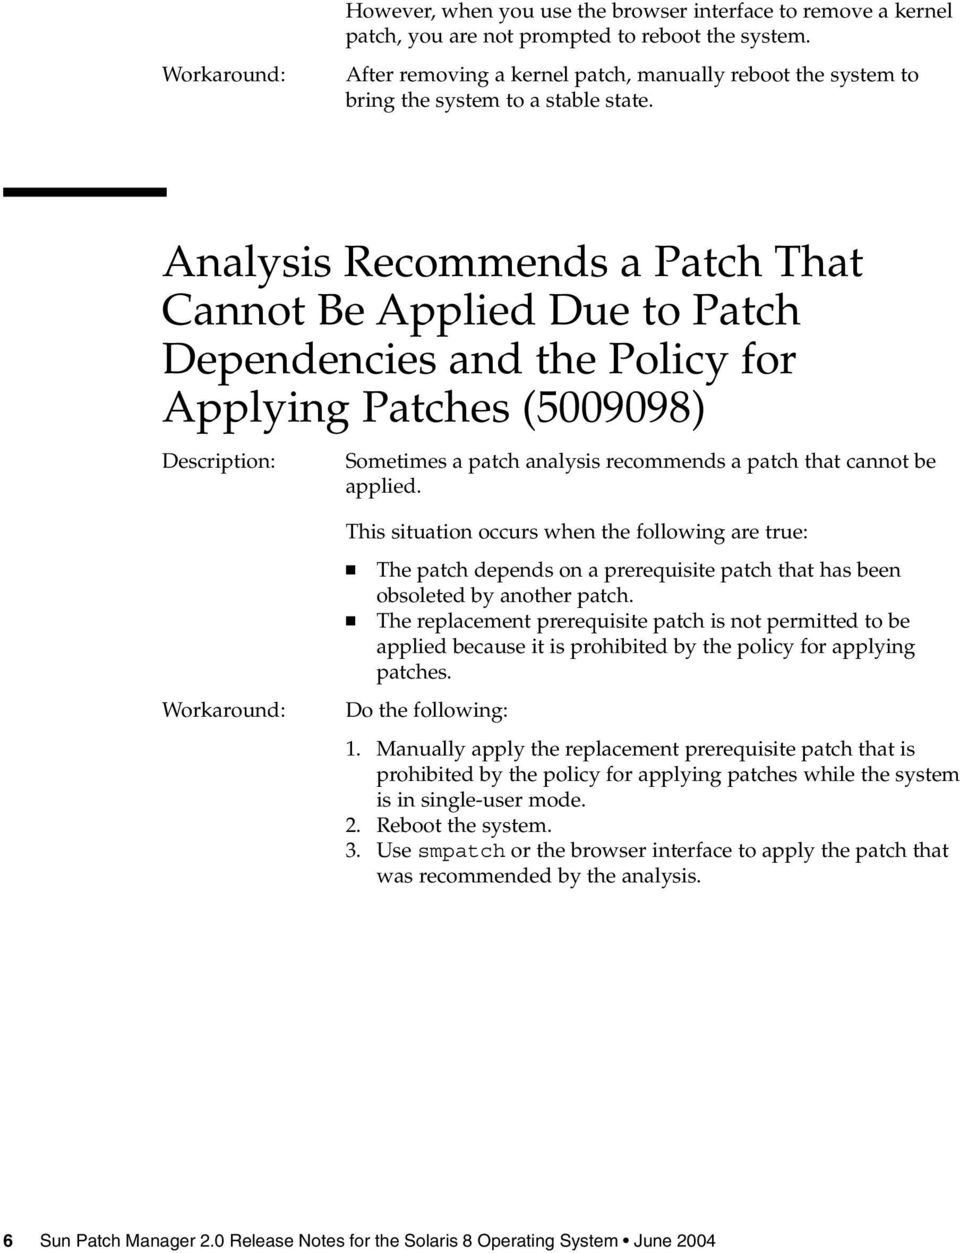 Analysis Recommends a Patch That Cannot Be Applied Due to Patch Dependencies and the Policy for Applying Patches (5009098) Description: Sometimes a patch analysis recommends a patch that cannot be